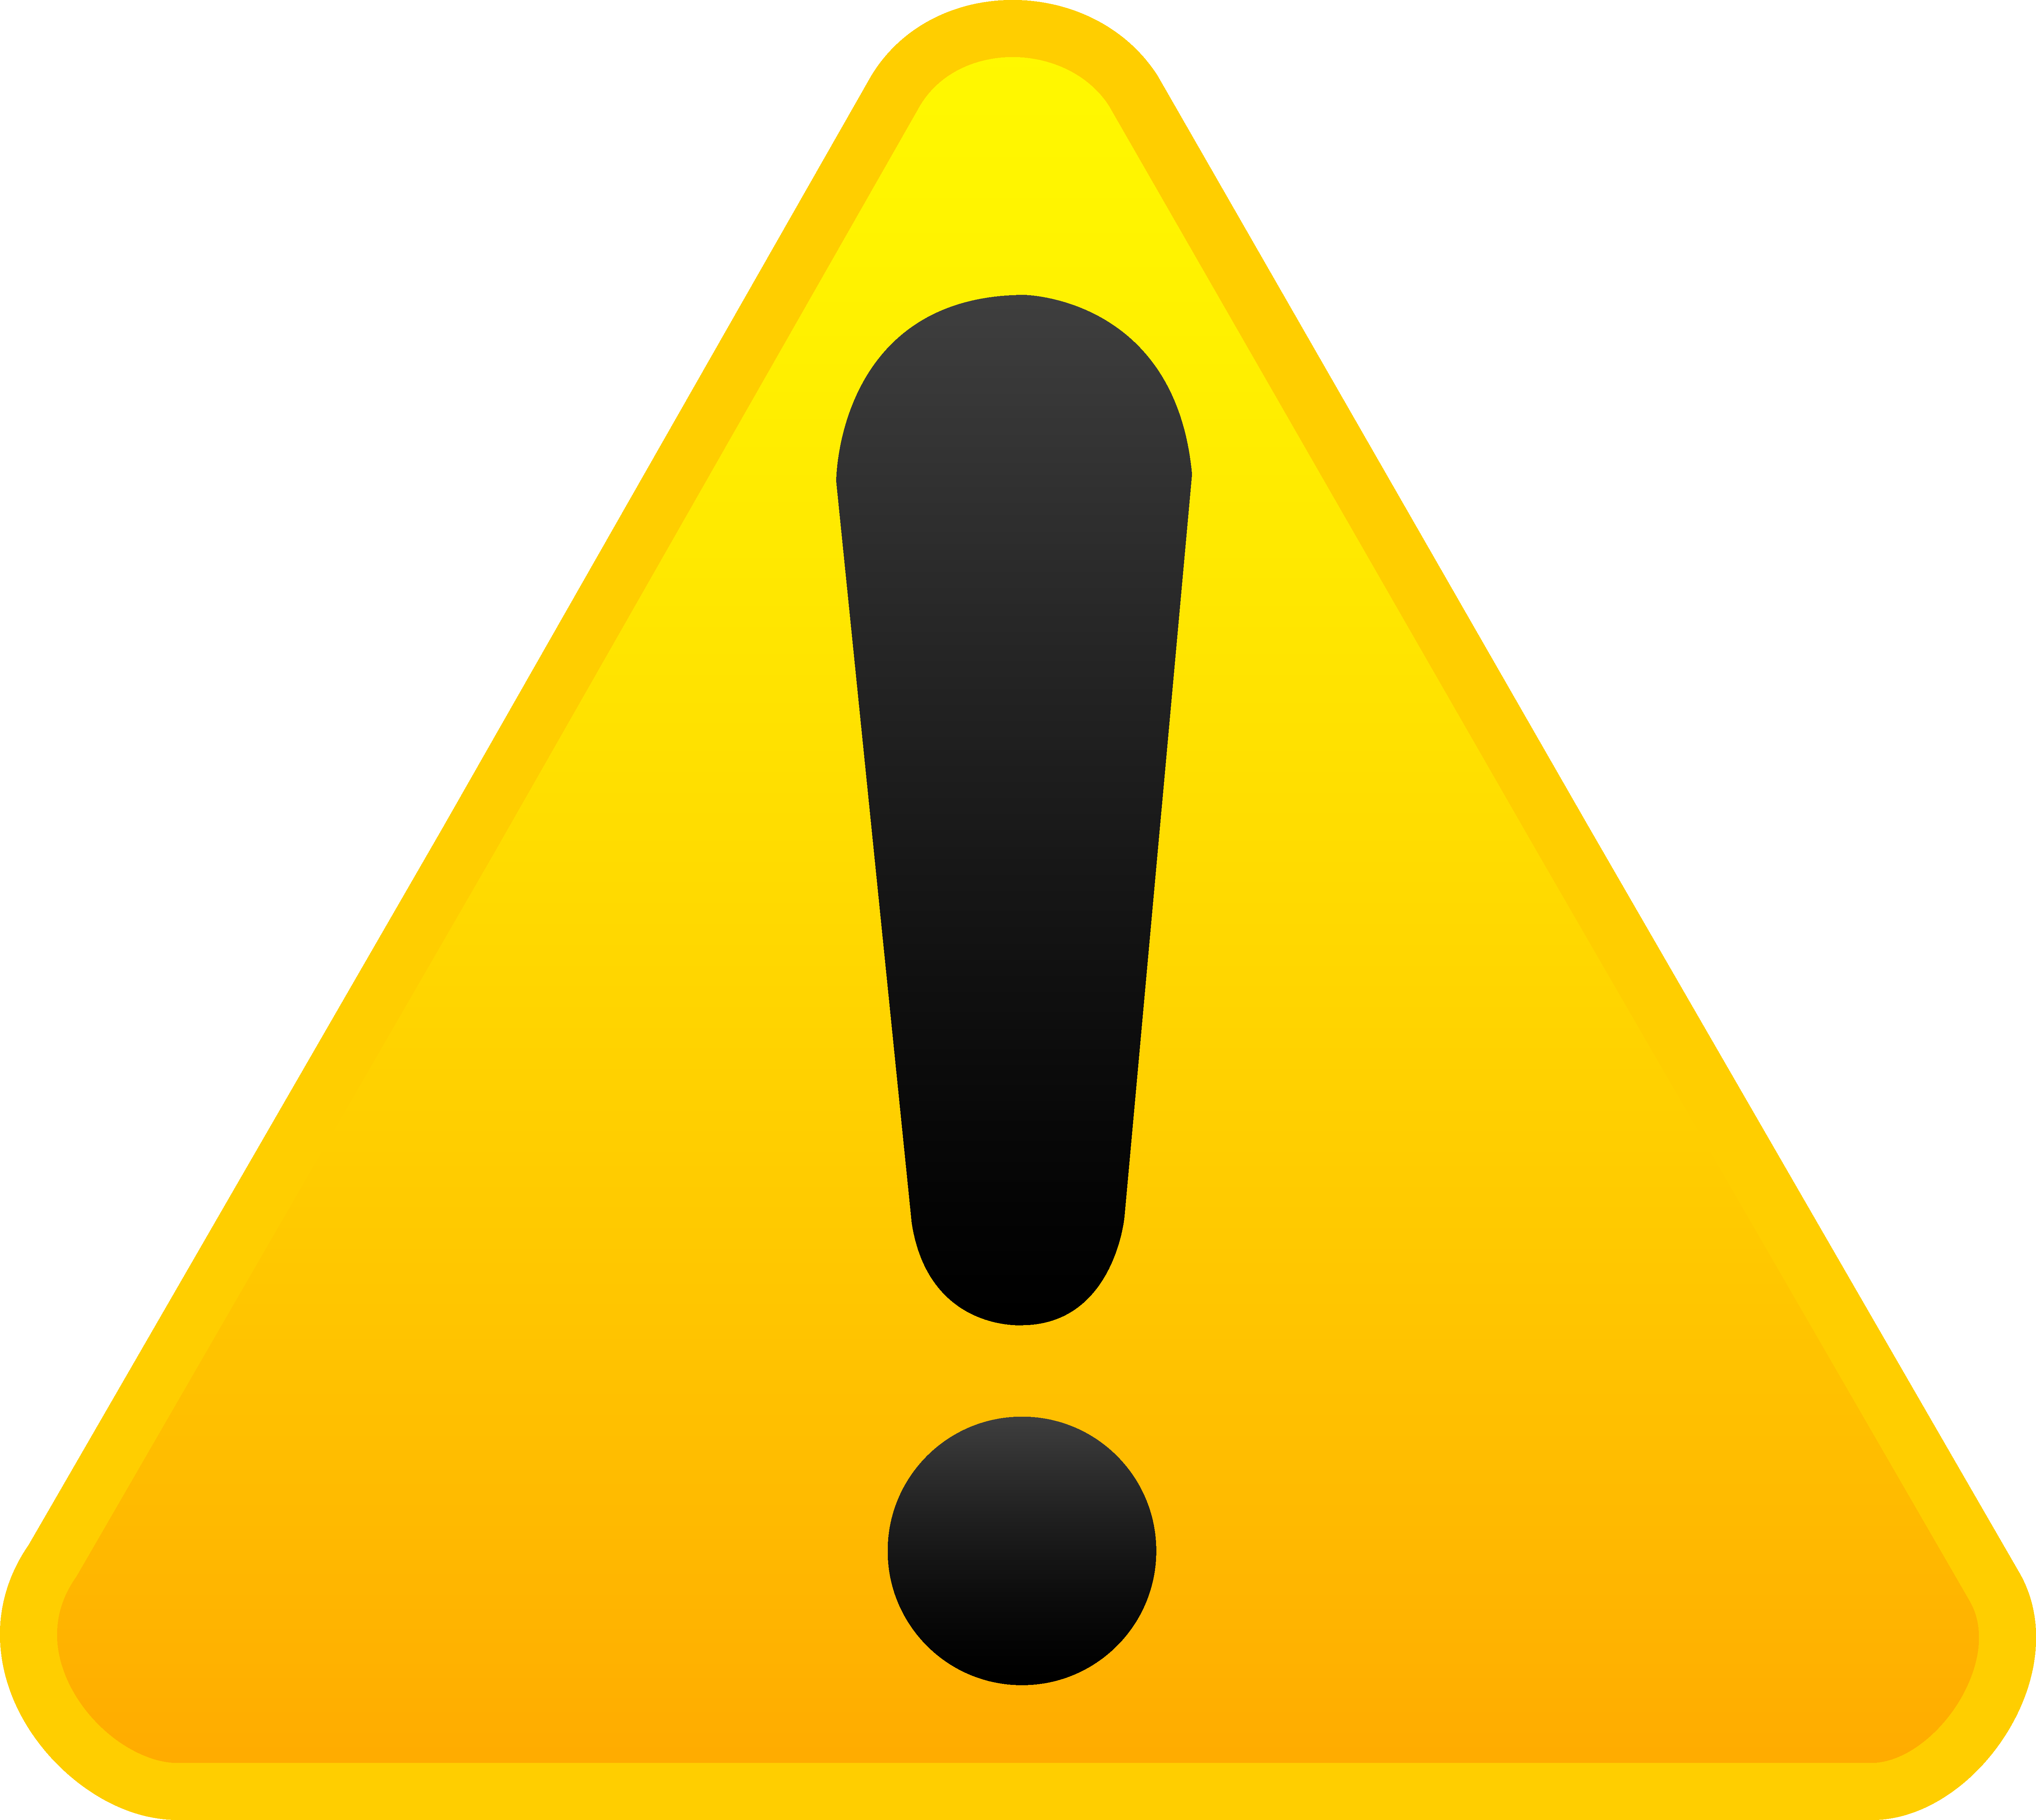 clipart black and white stock Free triangle symbol download. Caution clipart warning light